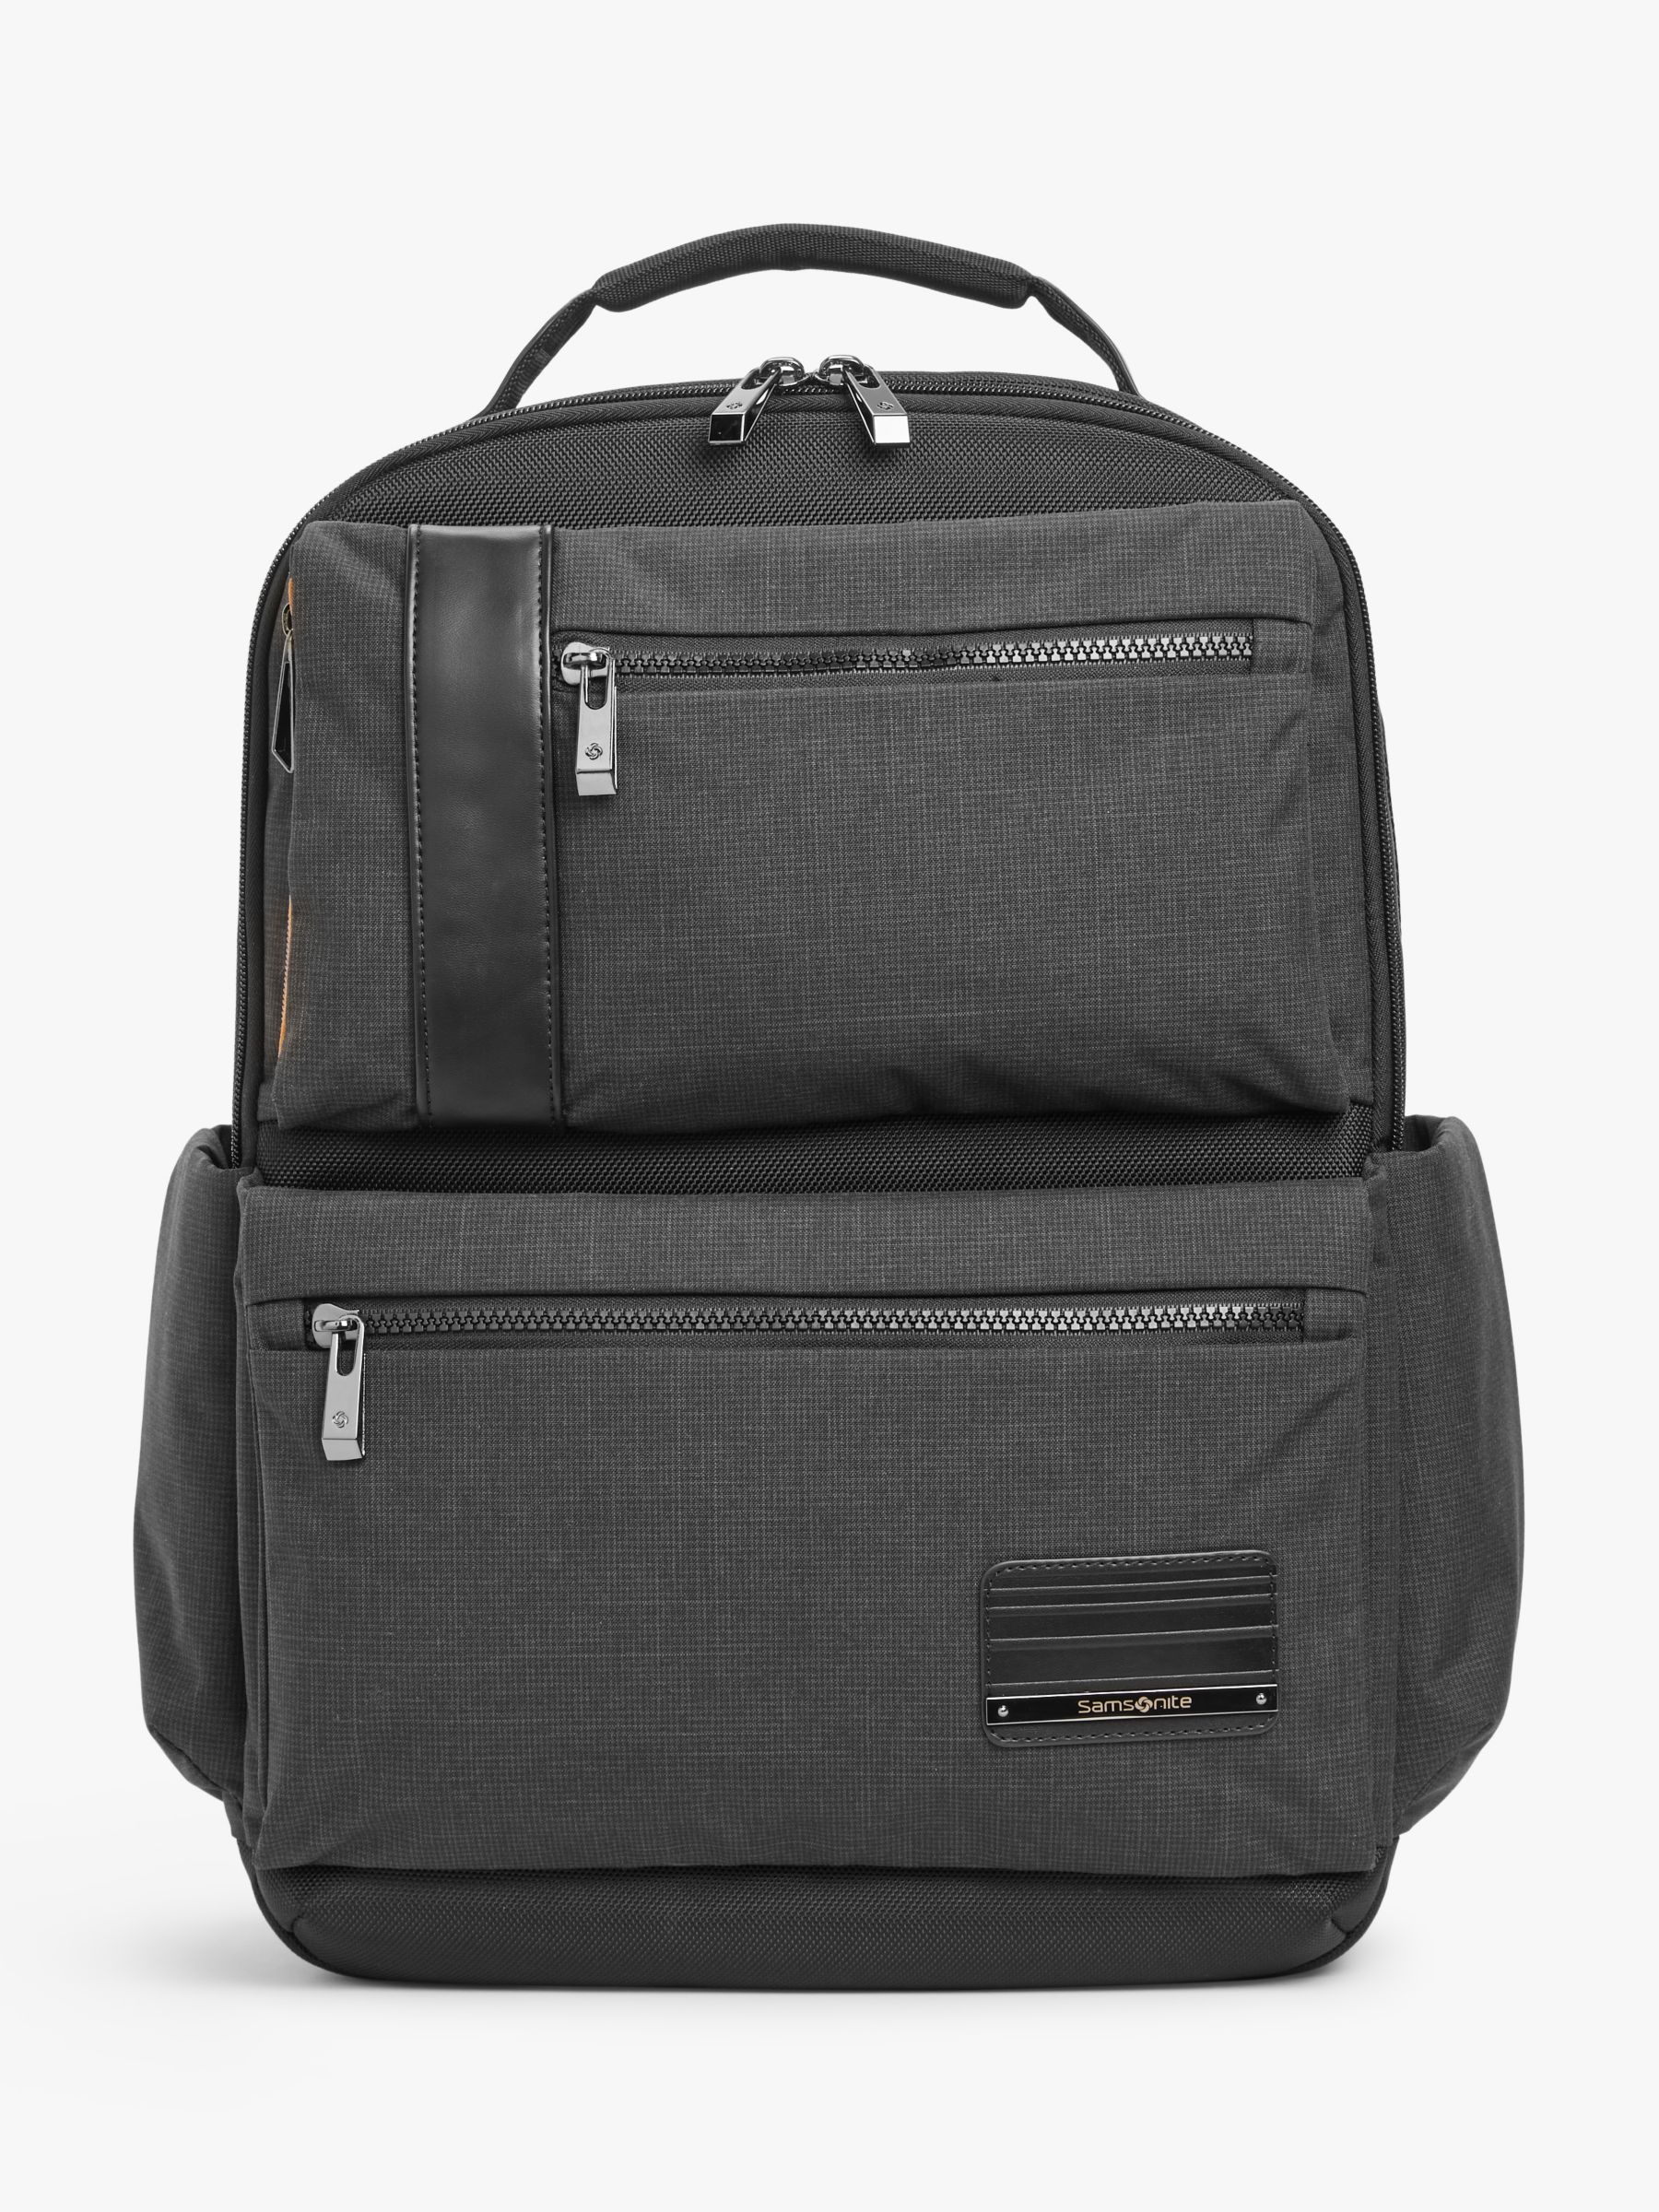 Samsonite Samsonite OpenRoad Laptop Backpack 15.6, Black